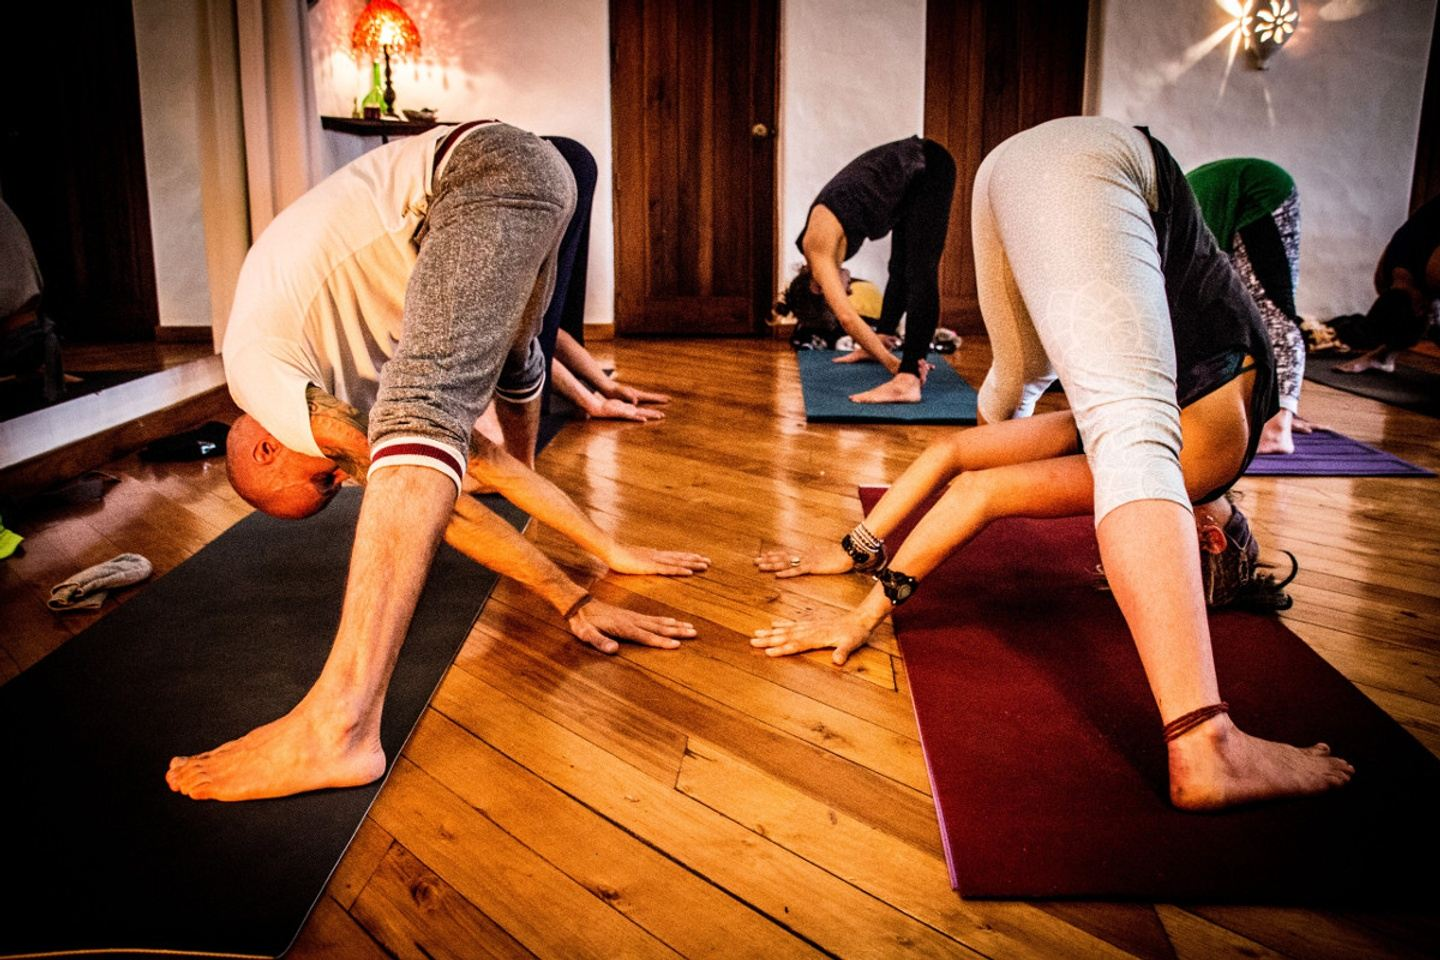 KERRY Payment plan: 28 days 200hrs Tantra Yoga Shamanism TT in Ecuador